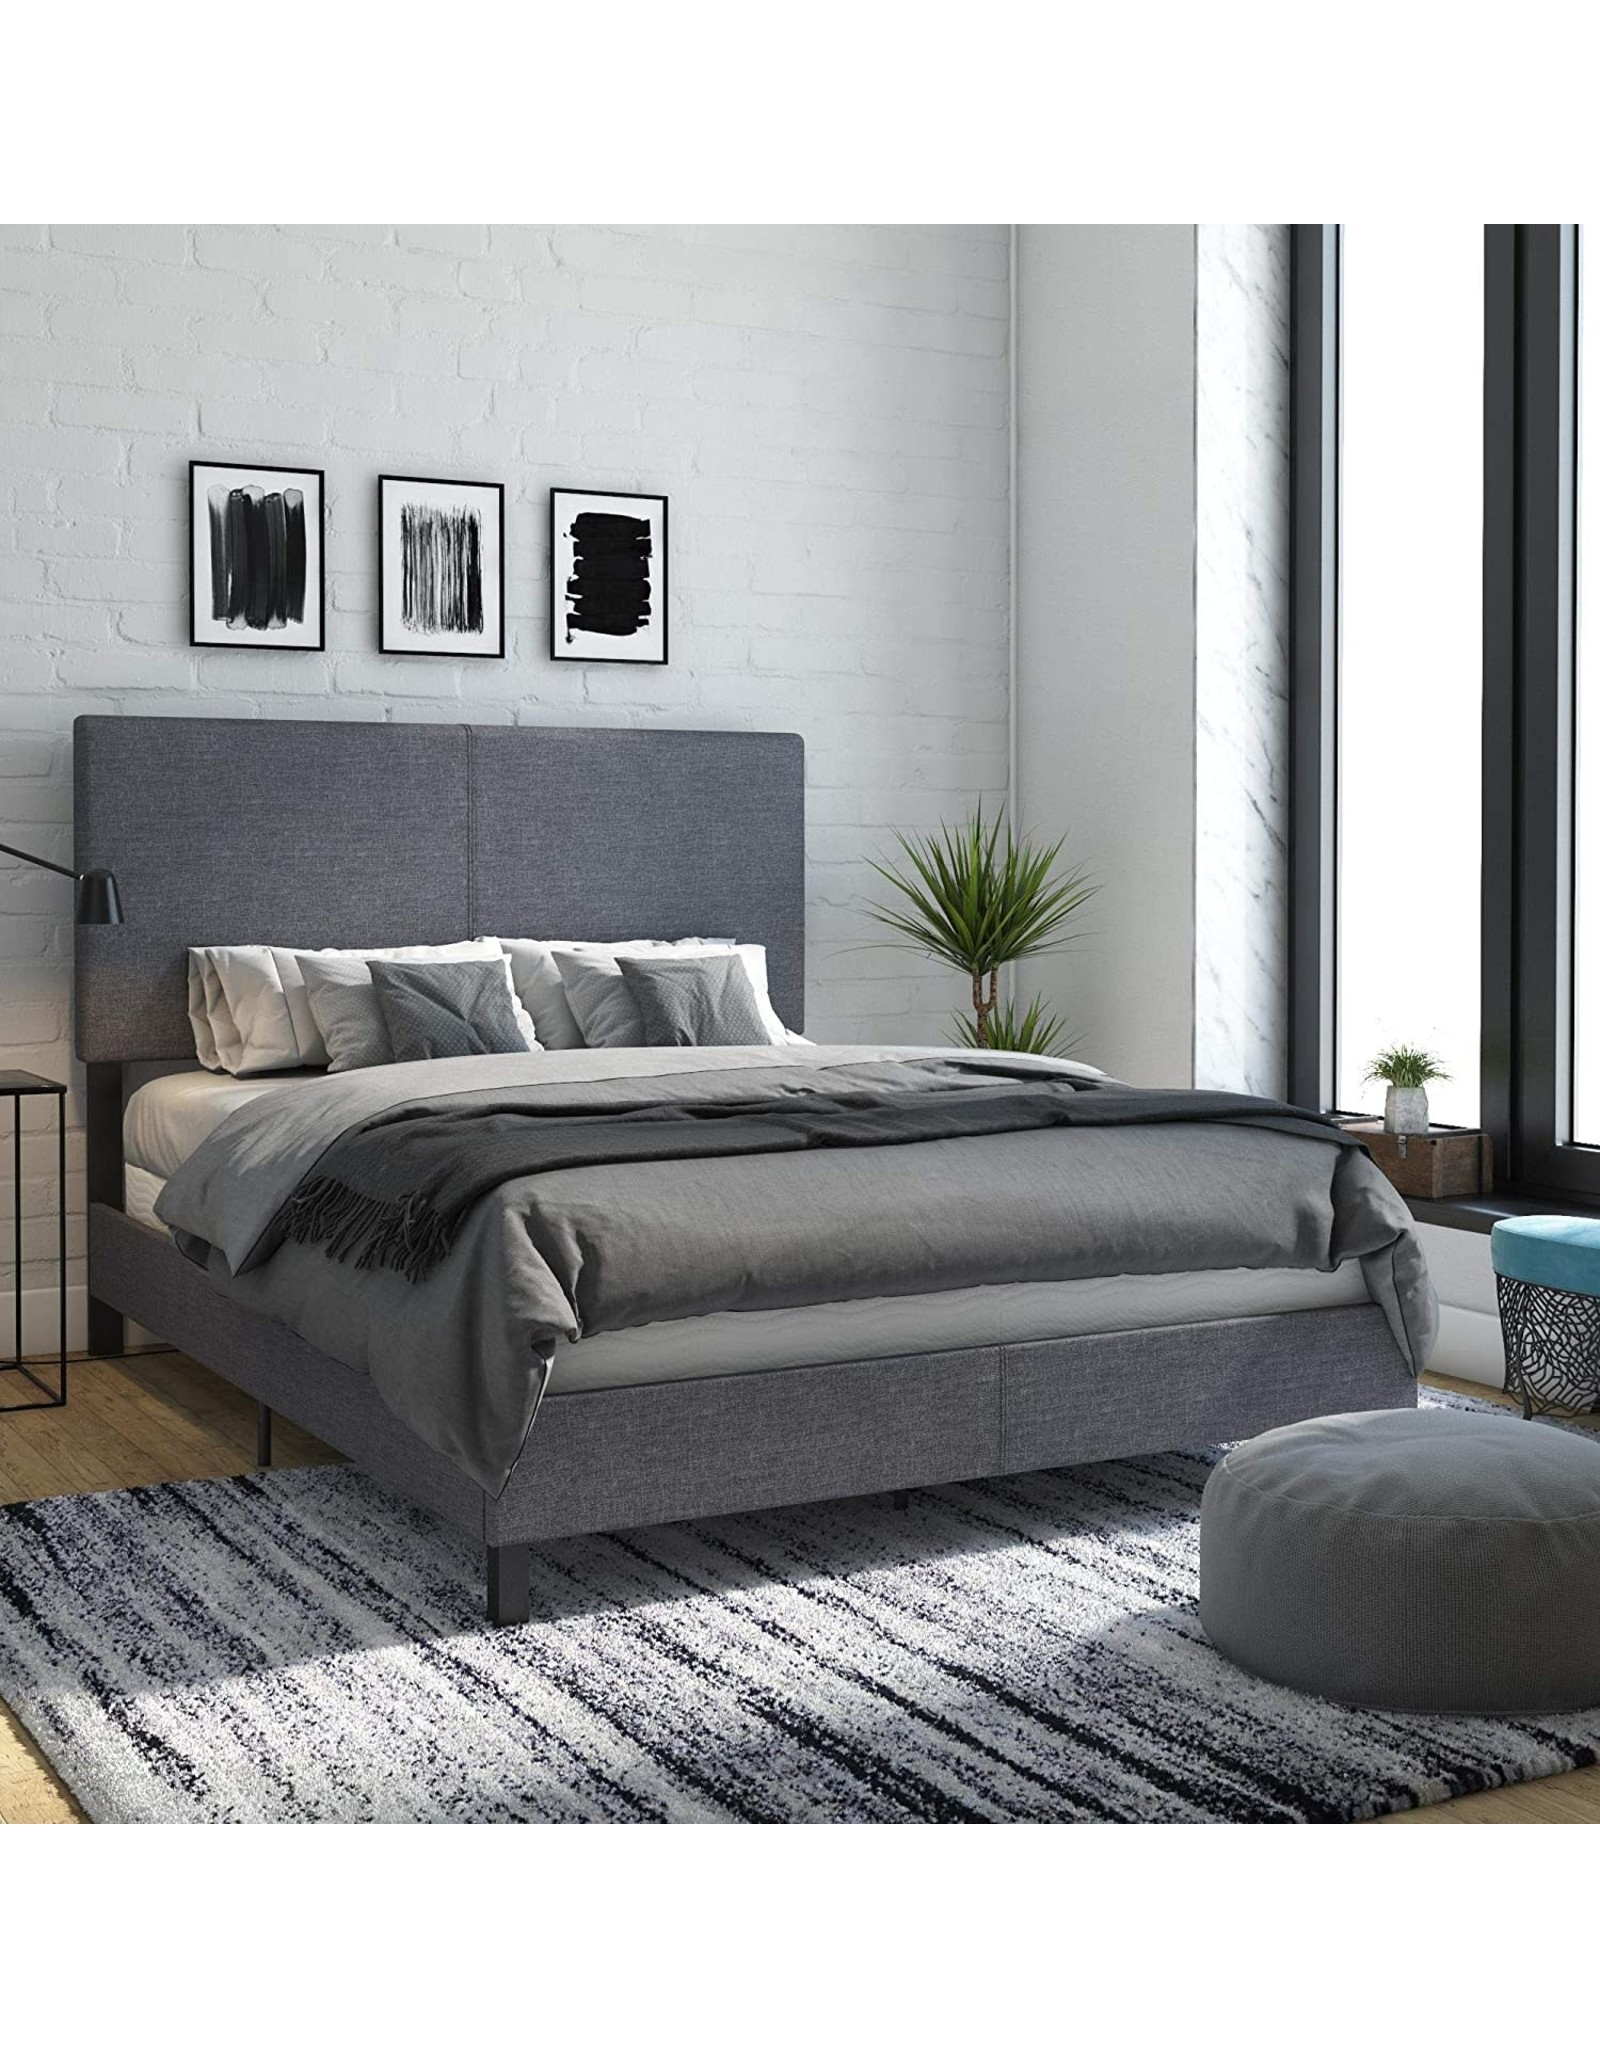 DHP DHP Janford Upholstered Bed with Chic Design  Queen  Grey Linen